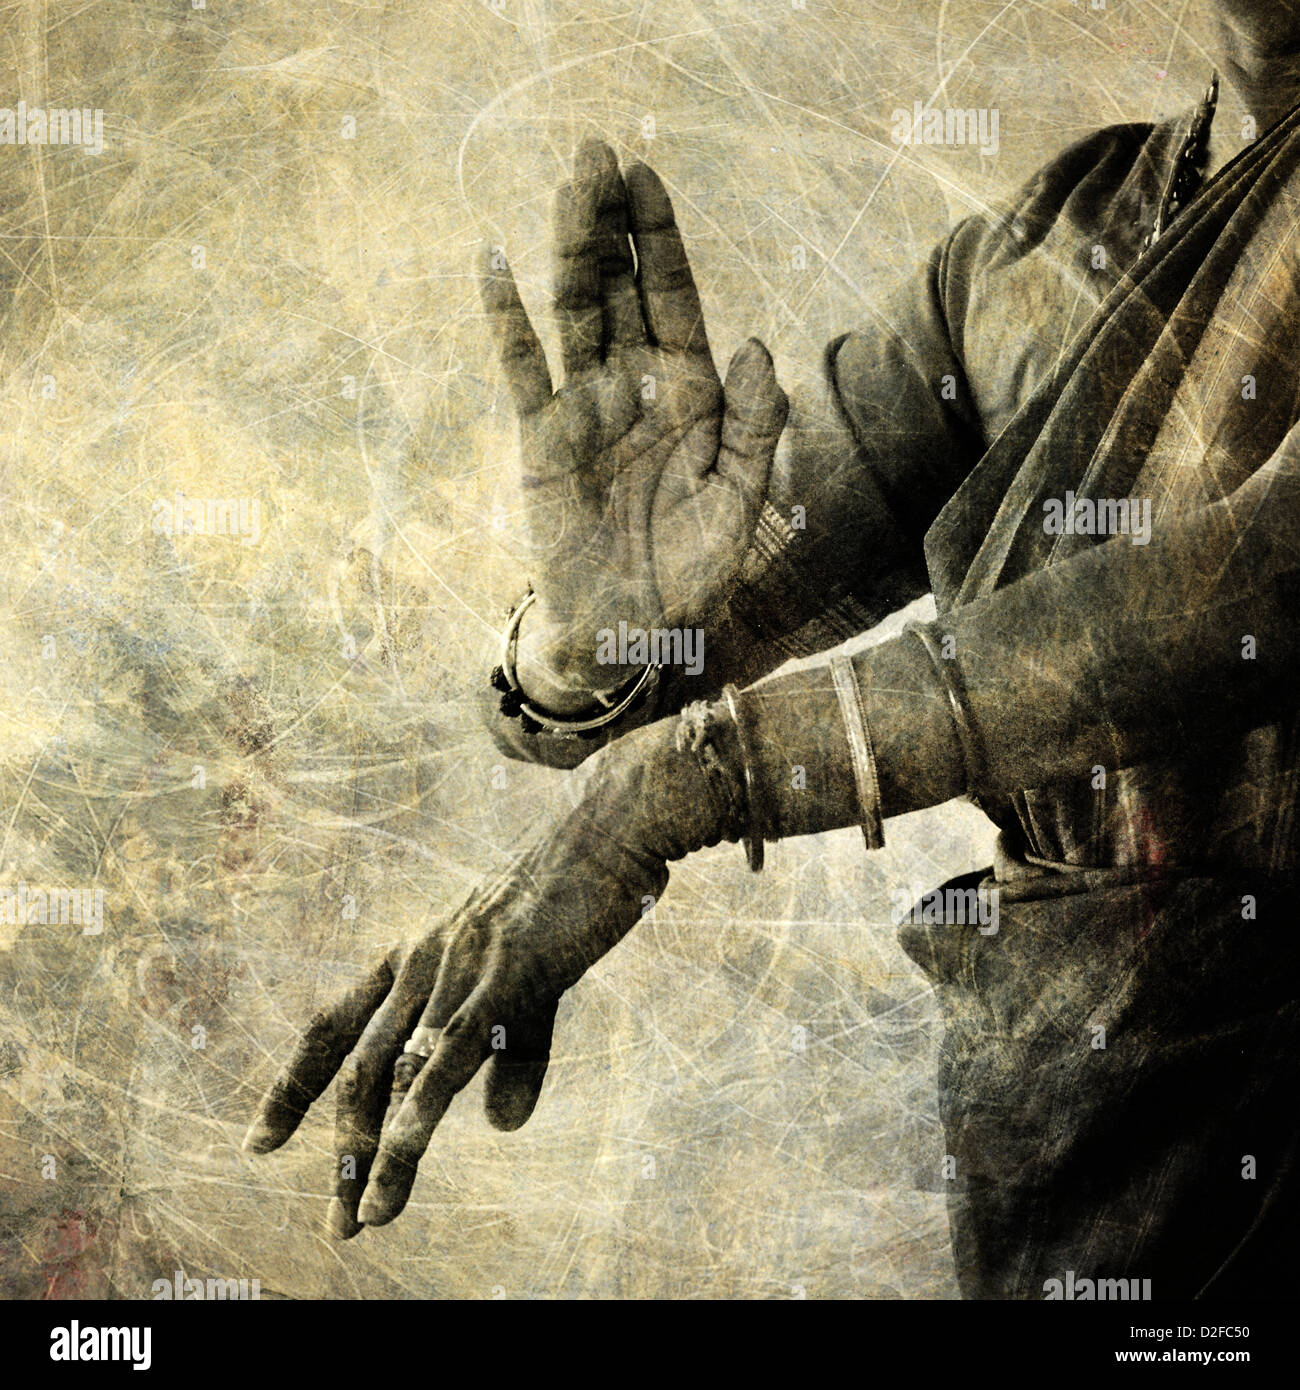 The hands of an Indian dancer. - Stock Image